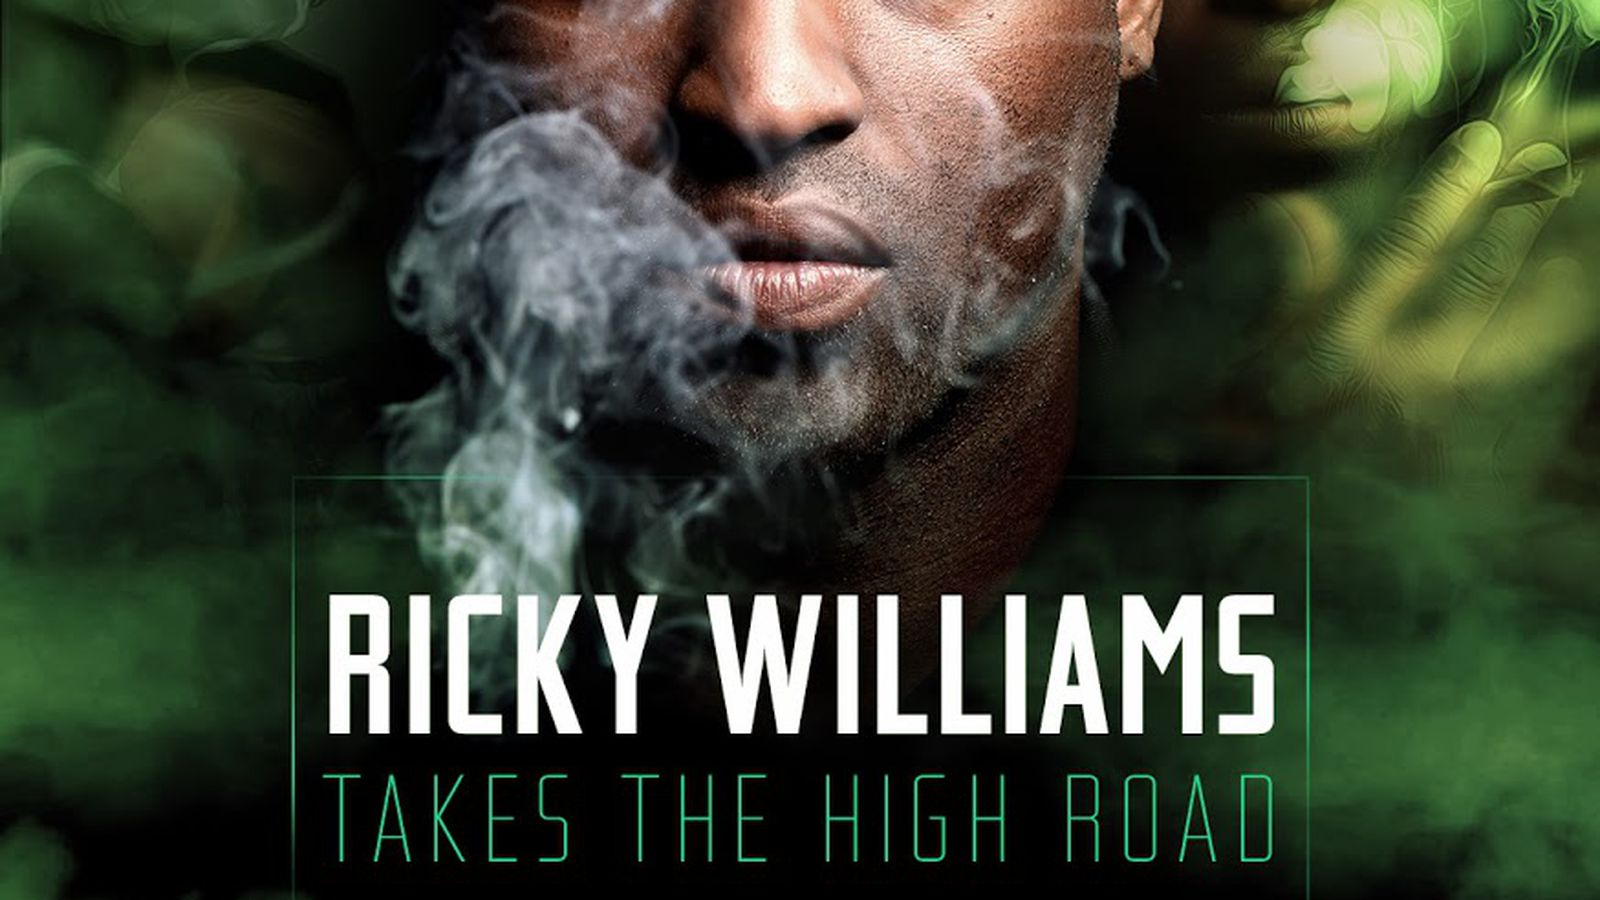 Sports_illustrated_films_poster_--_ricky_williams.0.0